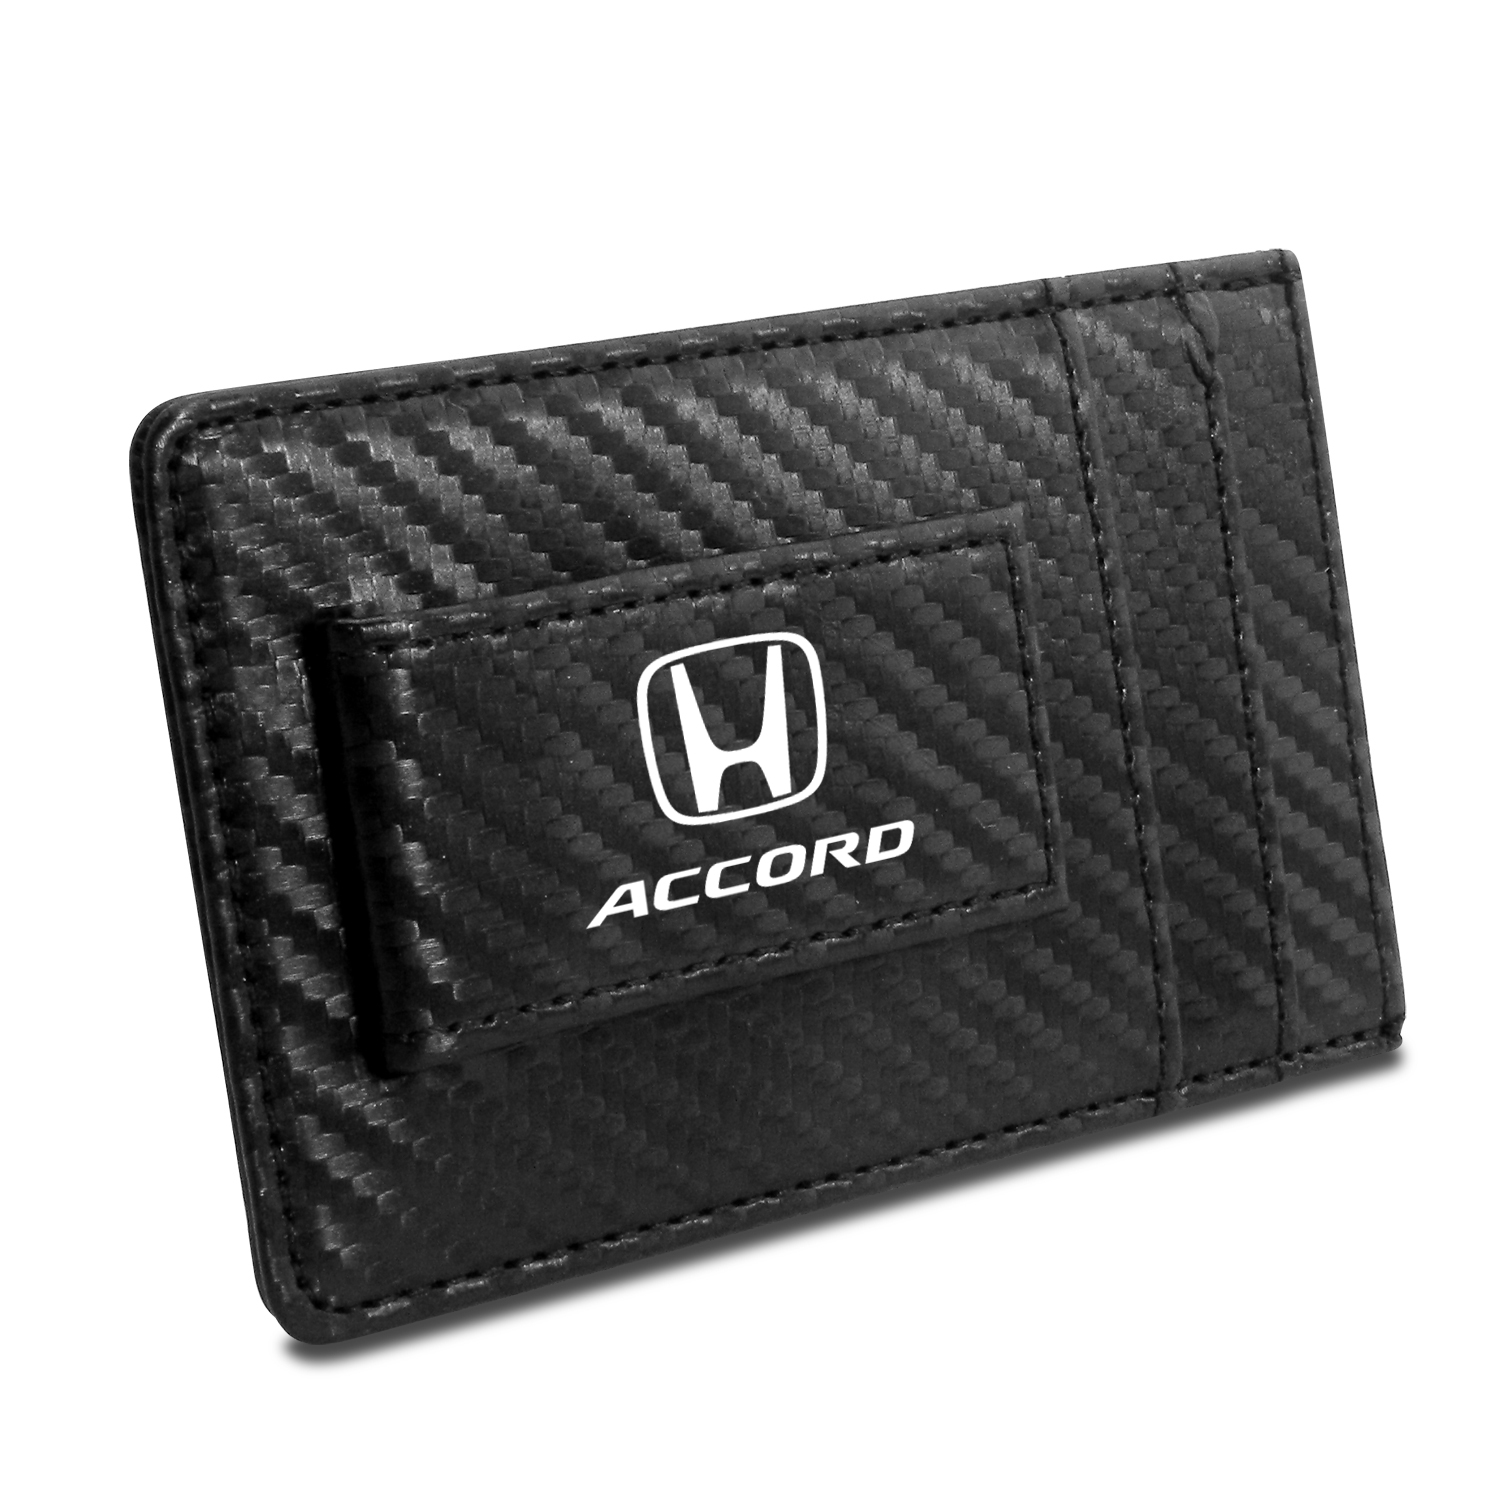 Honda Accord Black Carbon Fiber RFID Card Holder Wallet